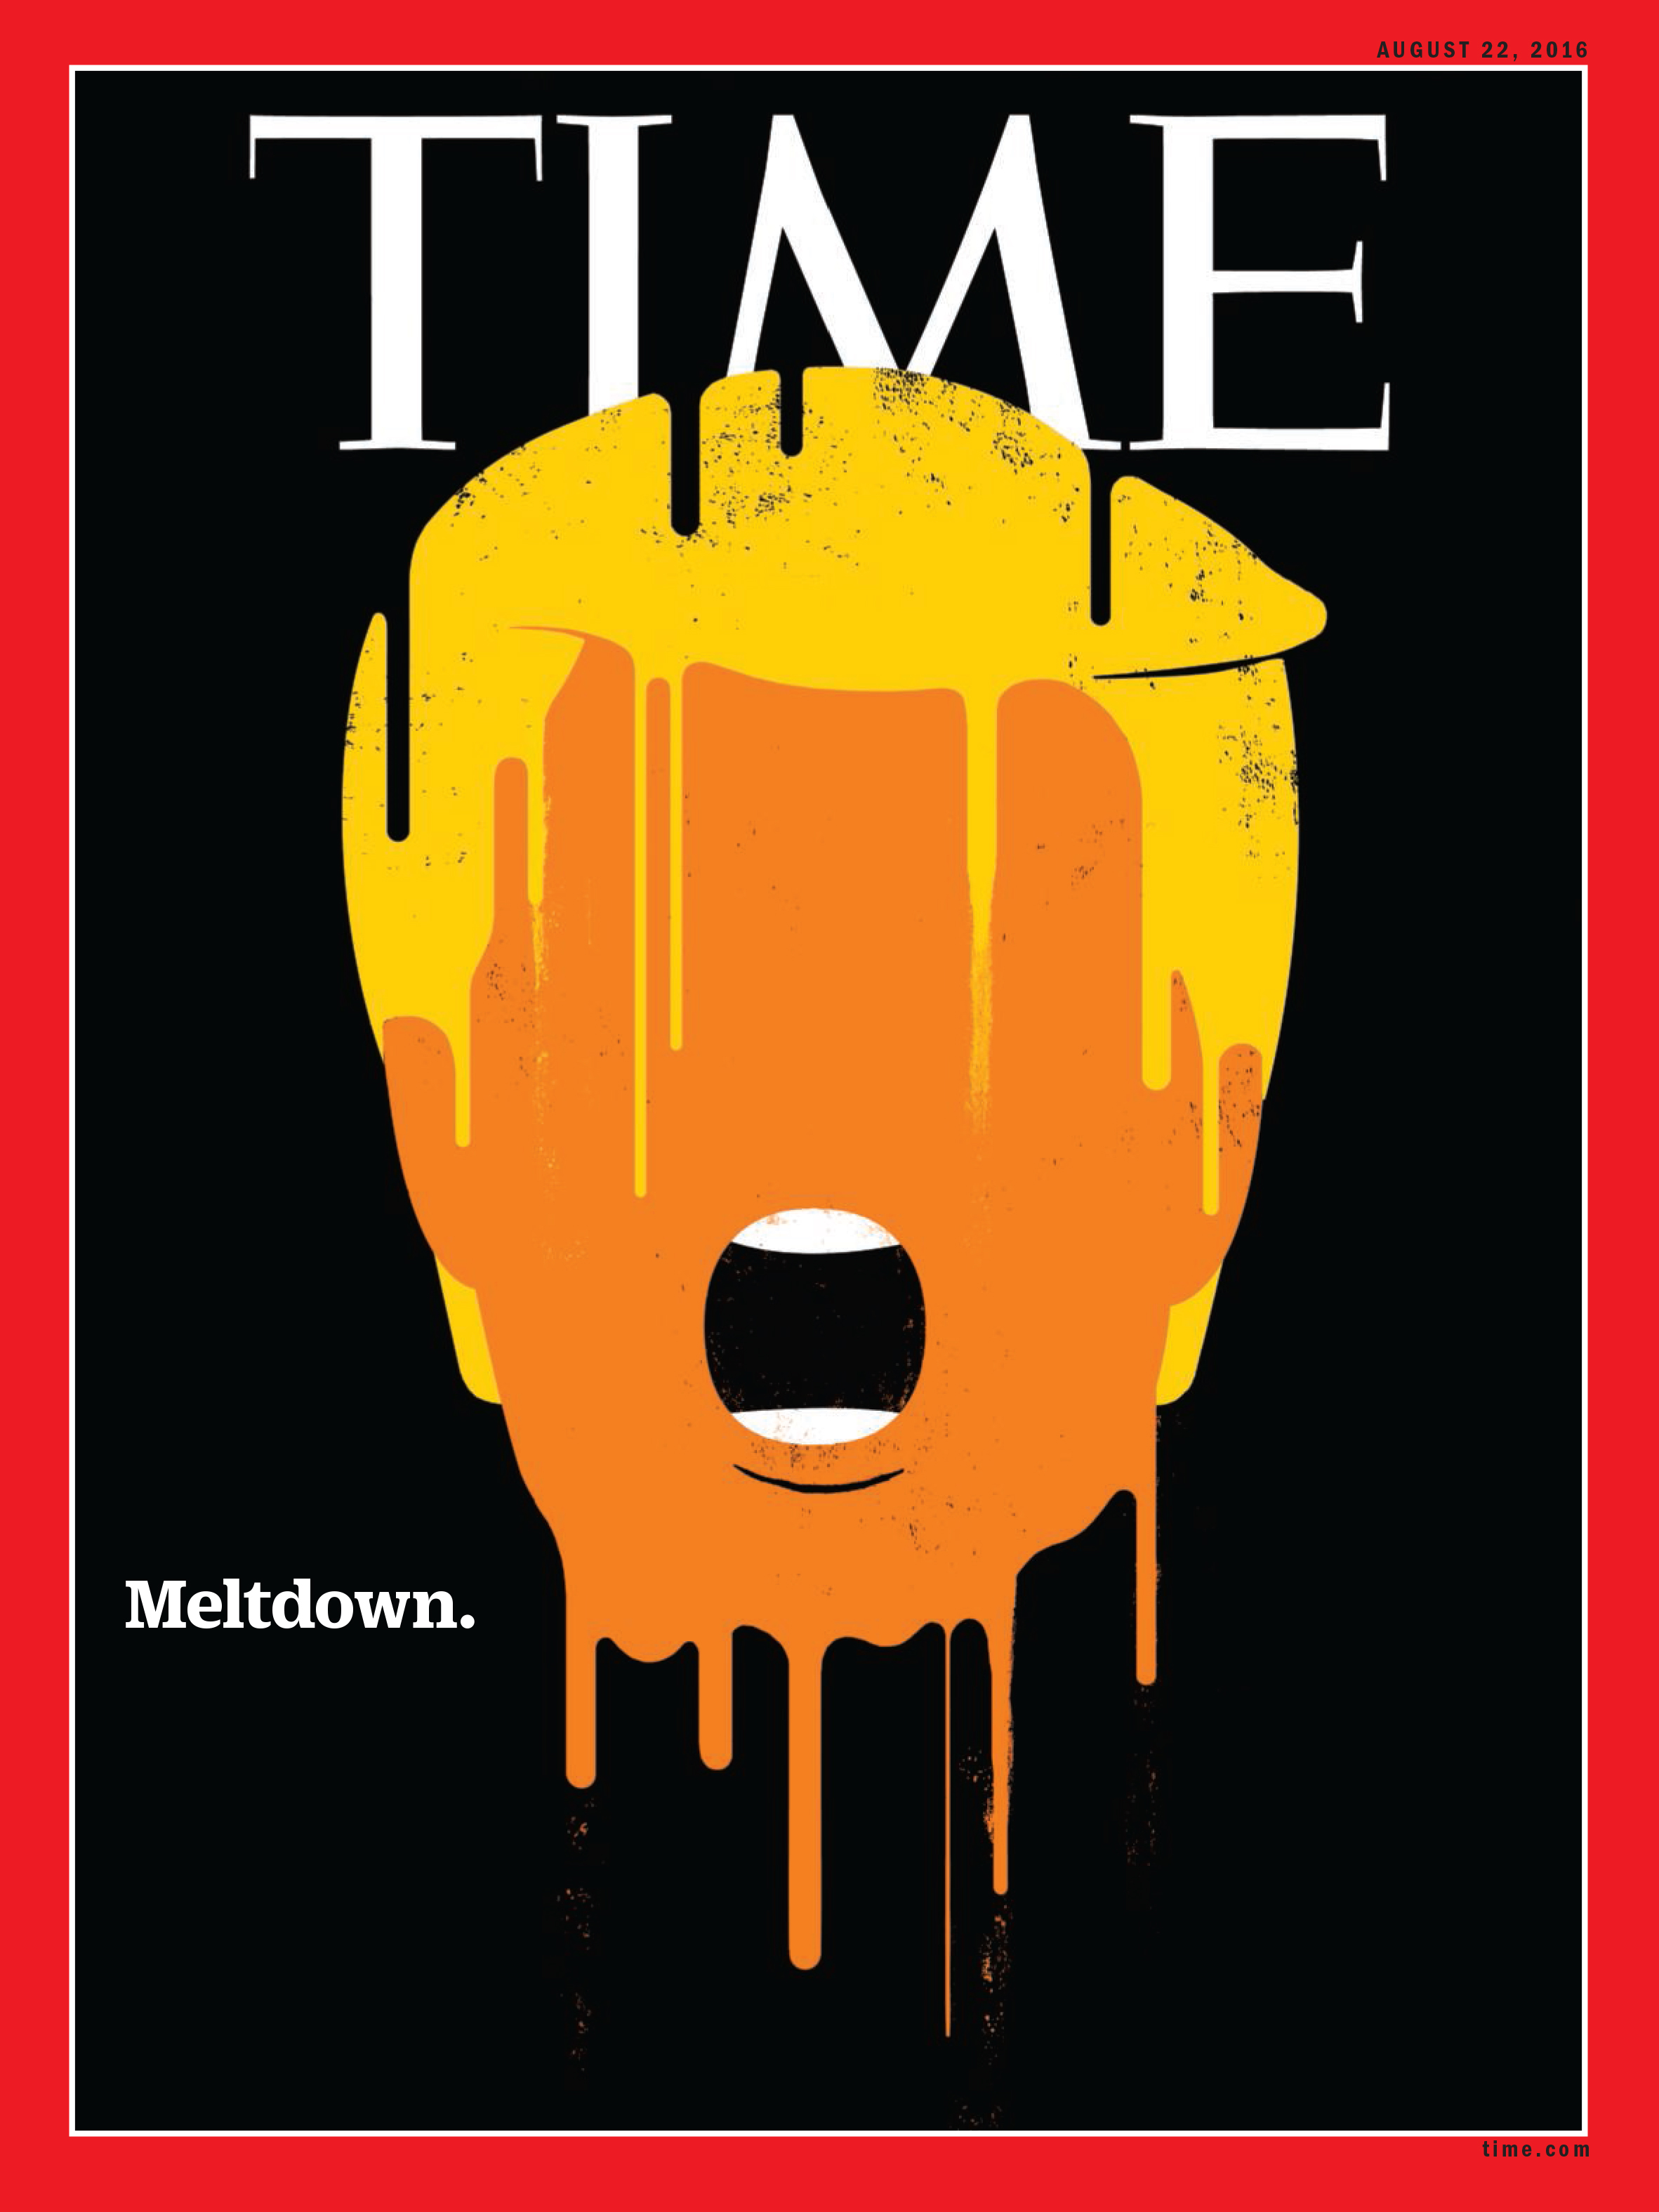 The Aug. 22, 2016 issue of TIME.